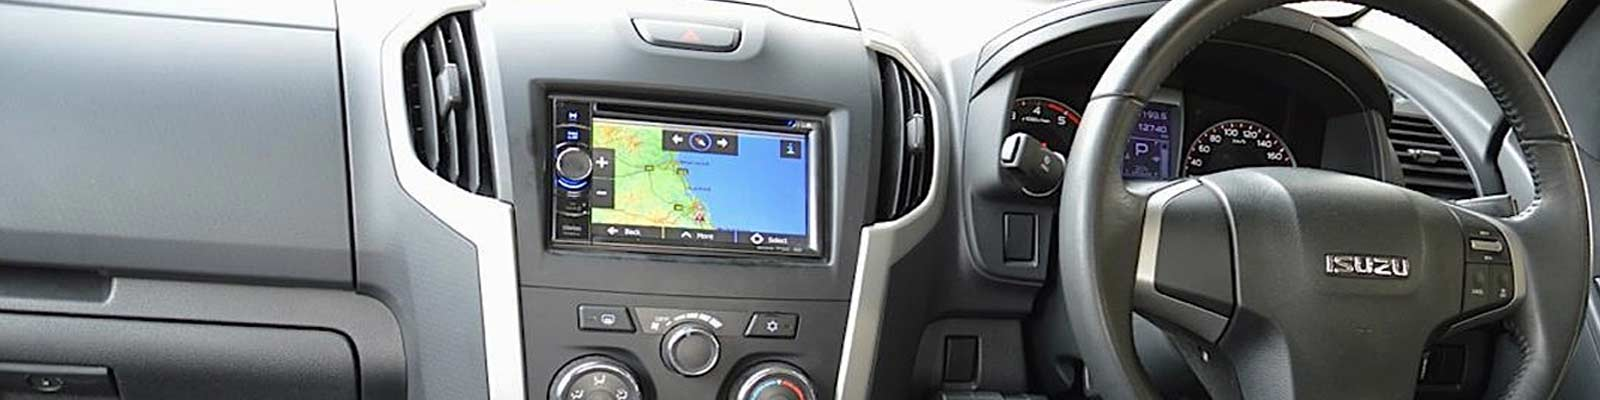 Audio & Navigation